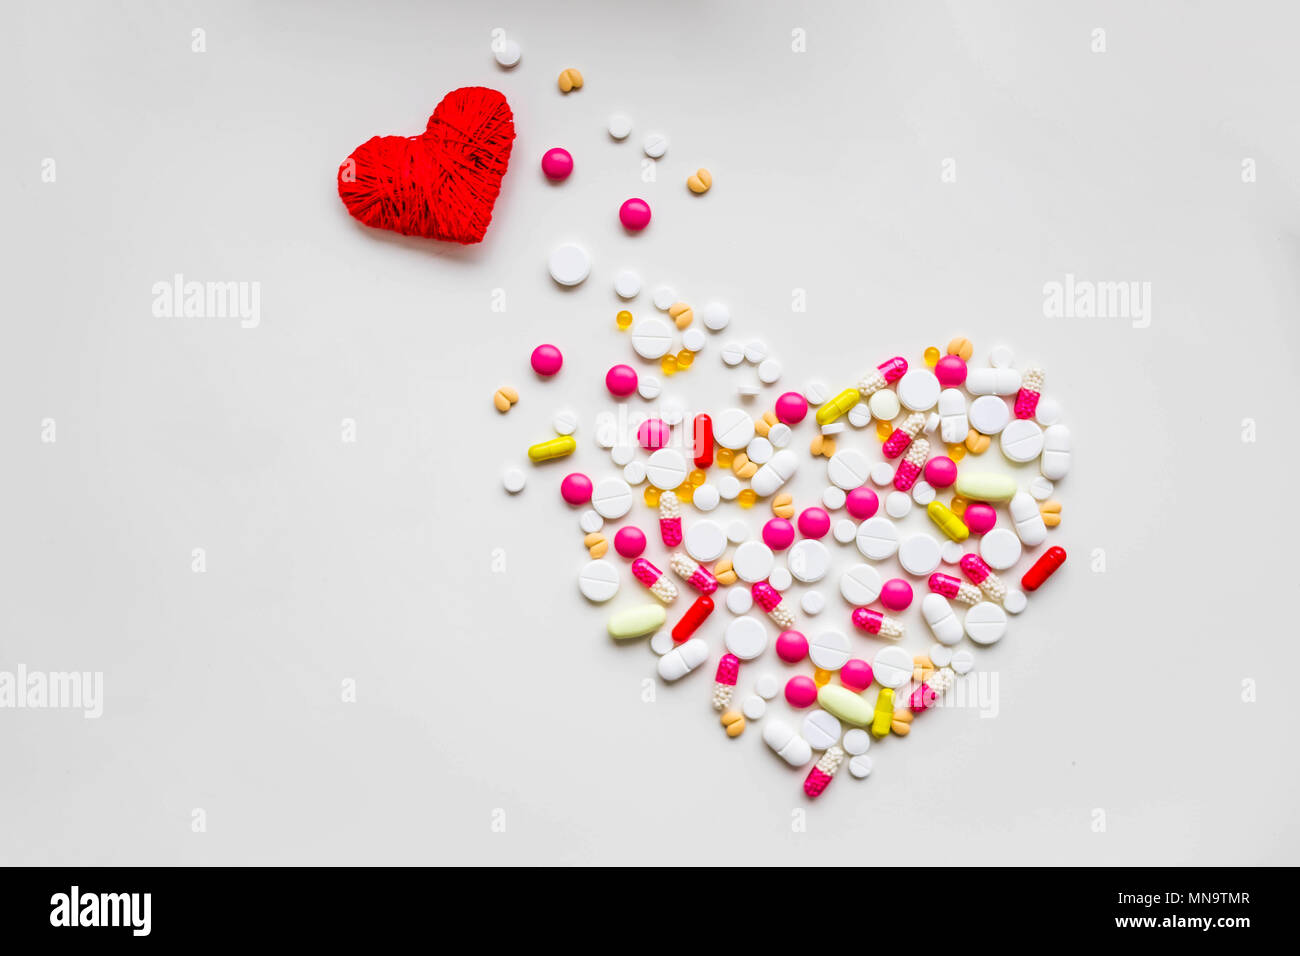 red heart with different pills over white background, healthy life concept.heart disease, heart condition. Problems with health. Arrhythmia, heart failure.impact of tablets on pregnancy.Copy space - Stock Image